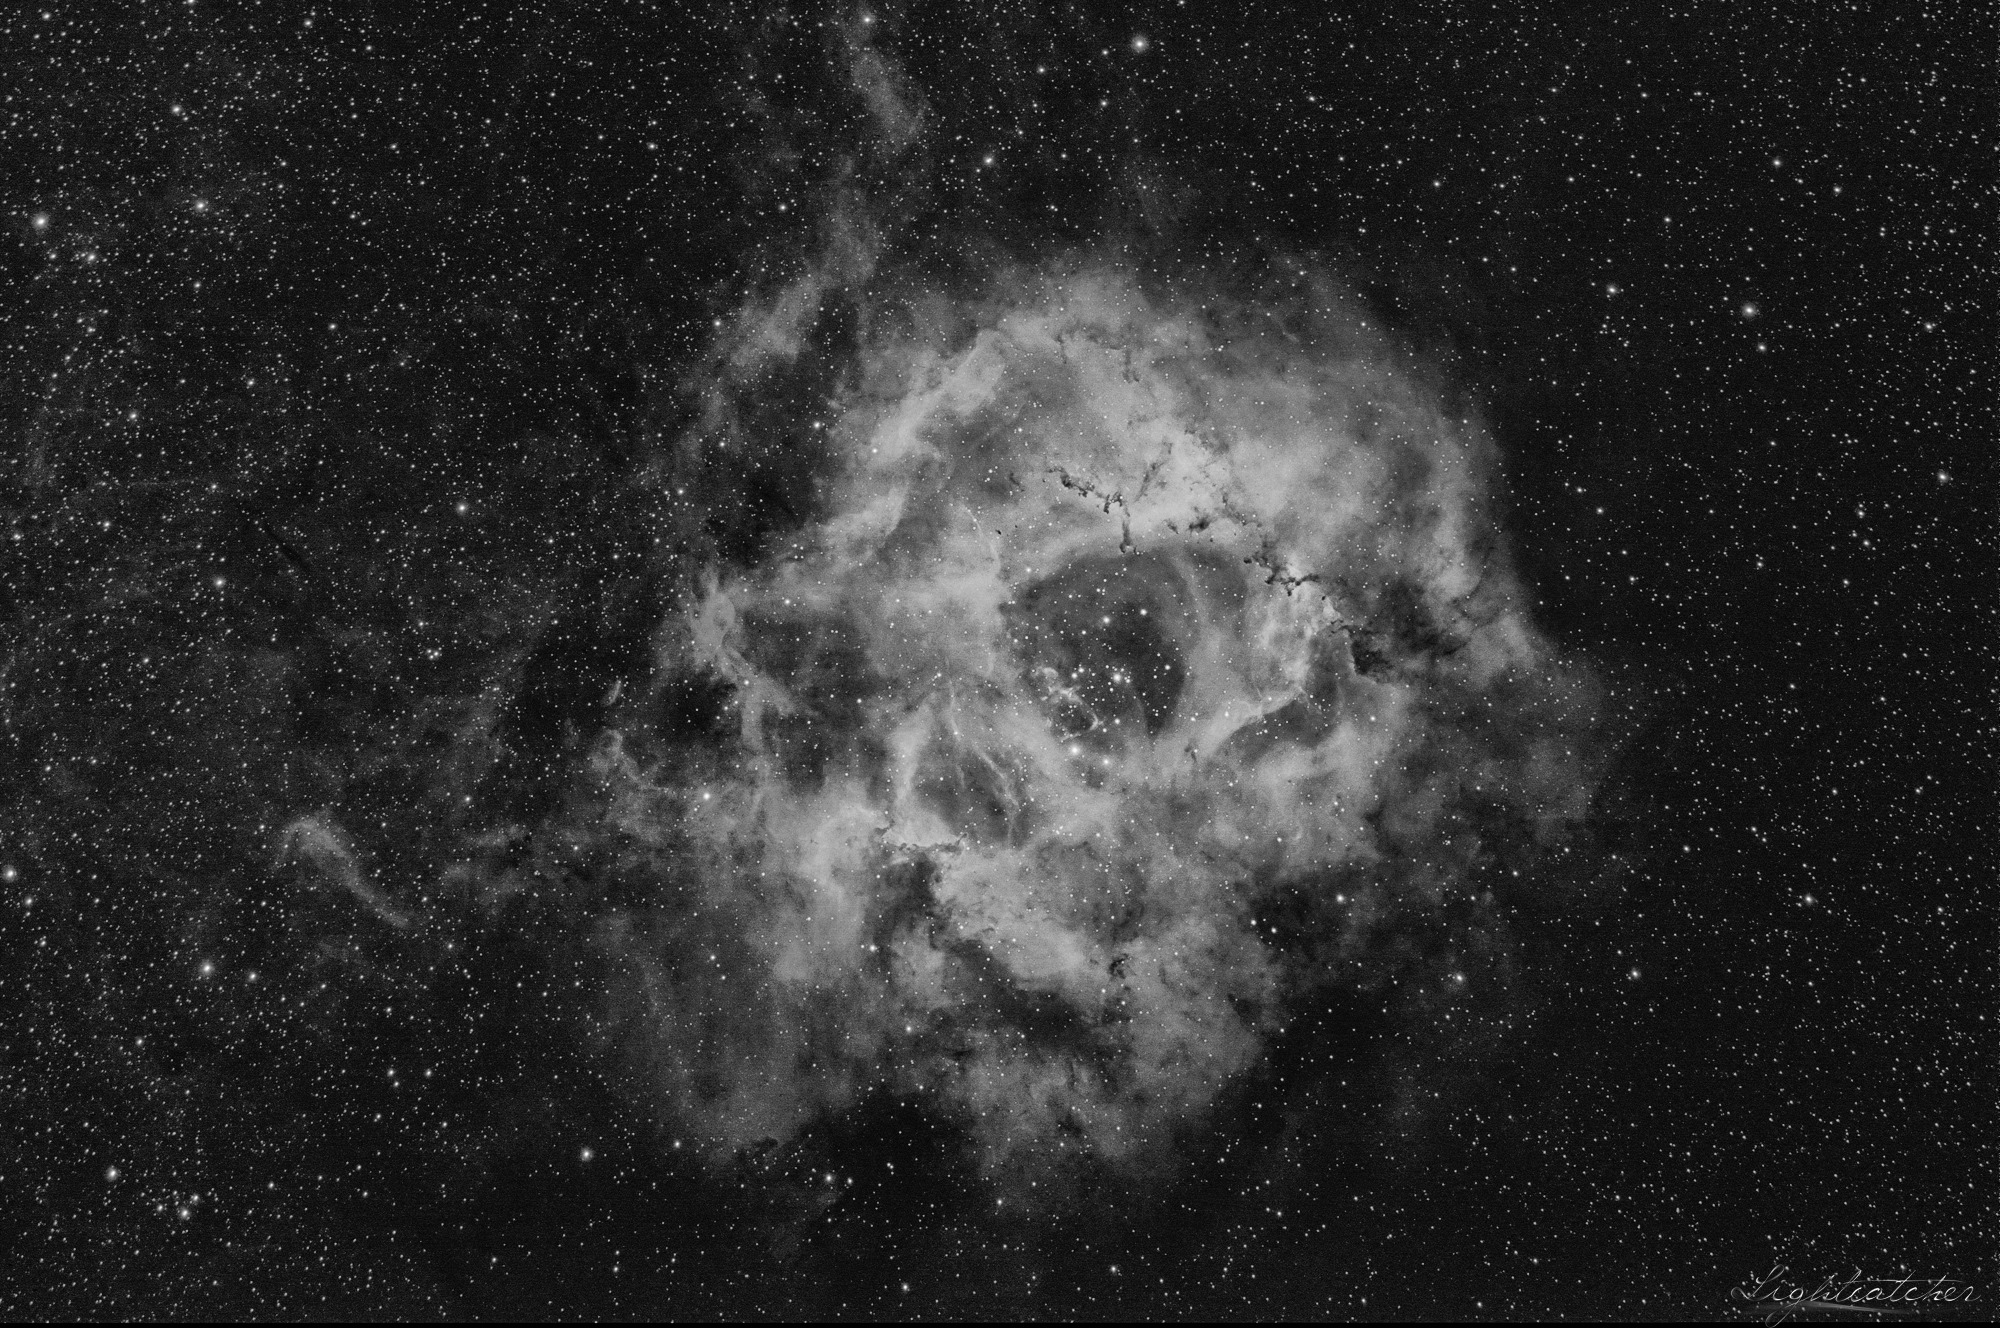 Rosette Nebula (NGC2239) in Hydrogen Alpha BW version Scope: ED-APO refractor D90 F500mm f/5.5 with experimentally connected SW field flattener Mount: NEQ6-Pro Camera: QHY168C Filter Baader 7nm H-alpha Guiding camera: ZWO ASI120MM Guiding scope: 60mm 16x300s exposure at -10°C (80 min total) binning 1x1 10xdarks 10xbias 10xflats